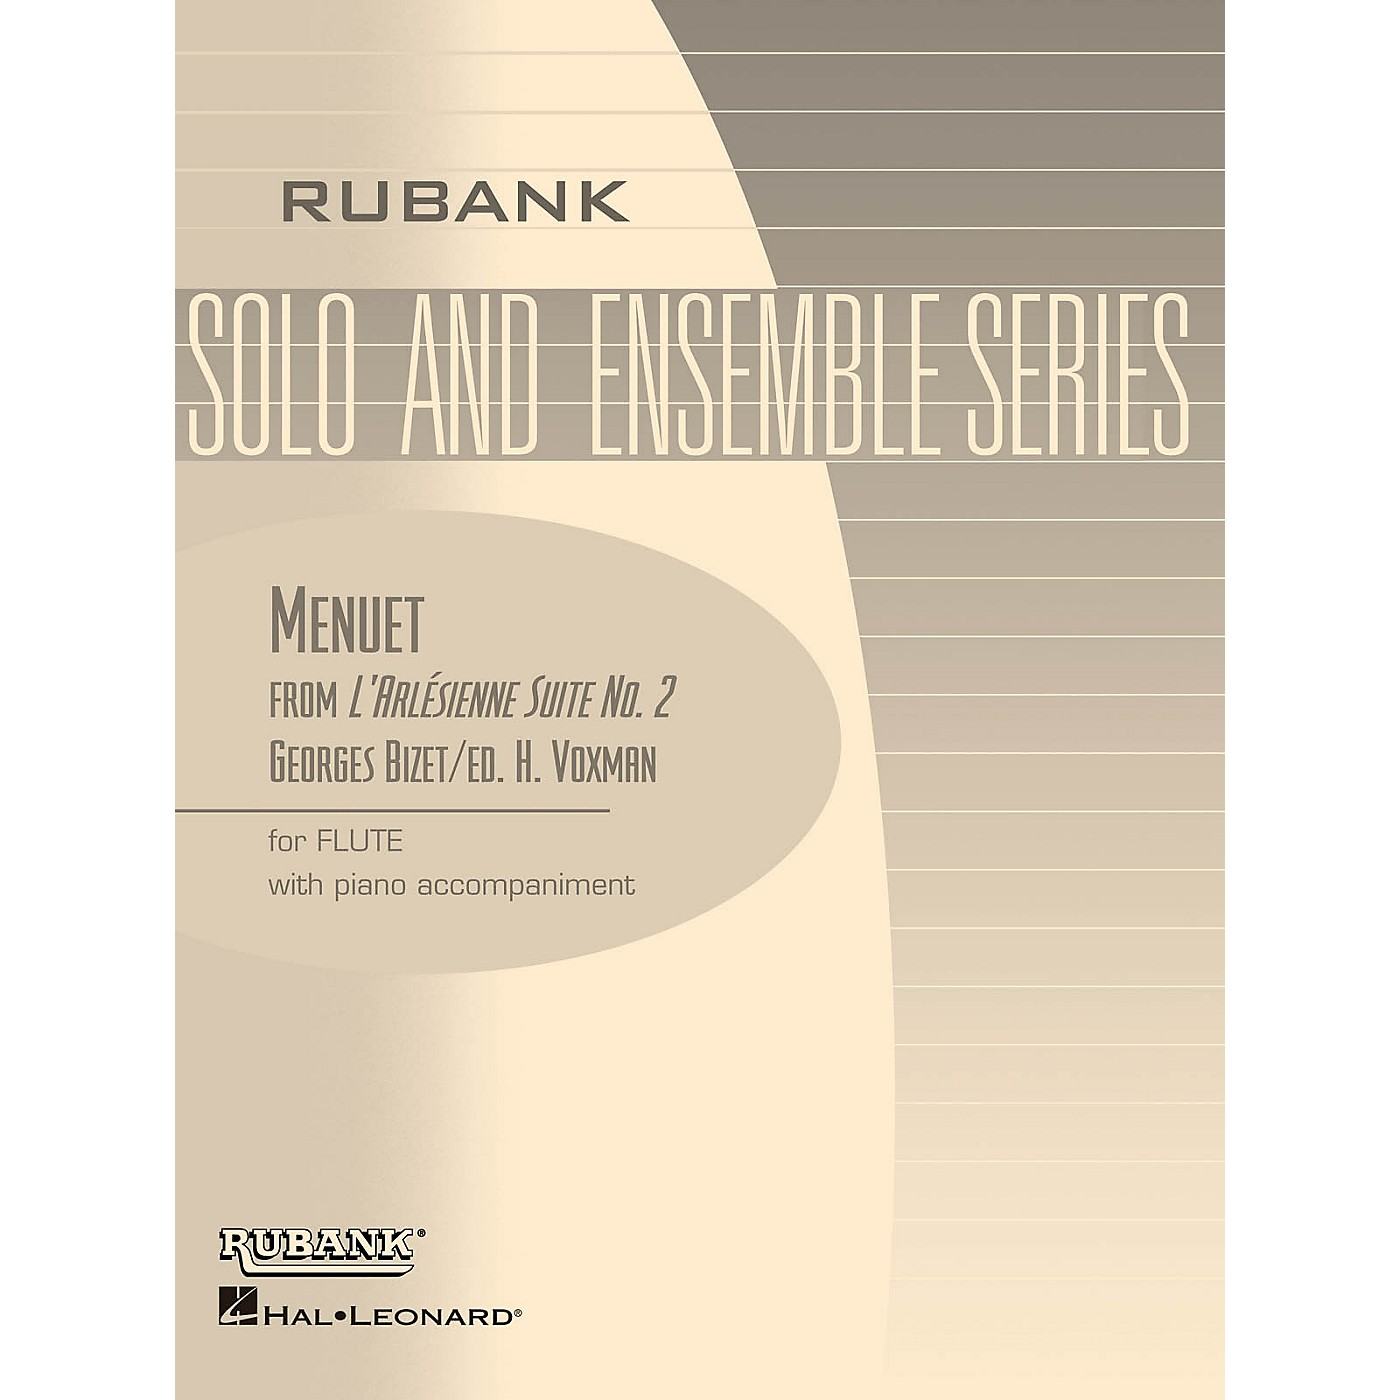 Rubank Publications Menuet from L'Arlesienne Suite No. 2 (Flute Solo with Piano - Grade 3) Rubank Solo/Ensemble Sheet Series thumbnail